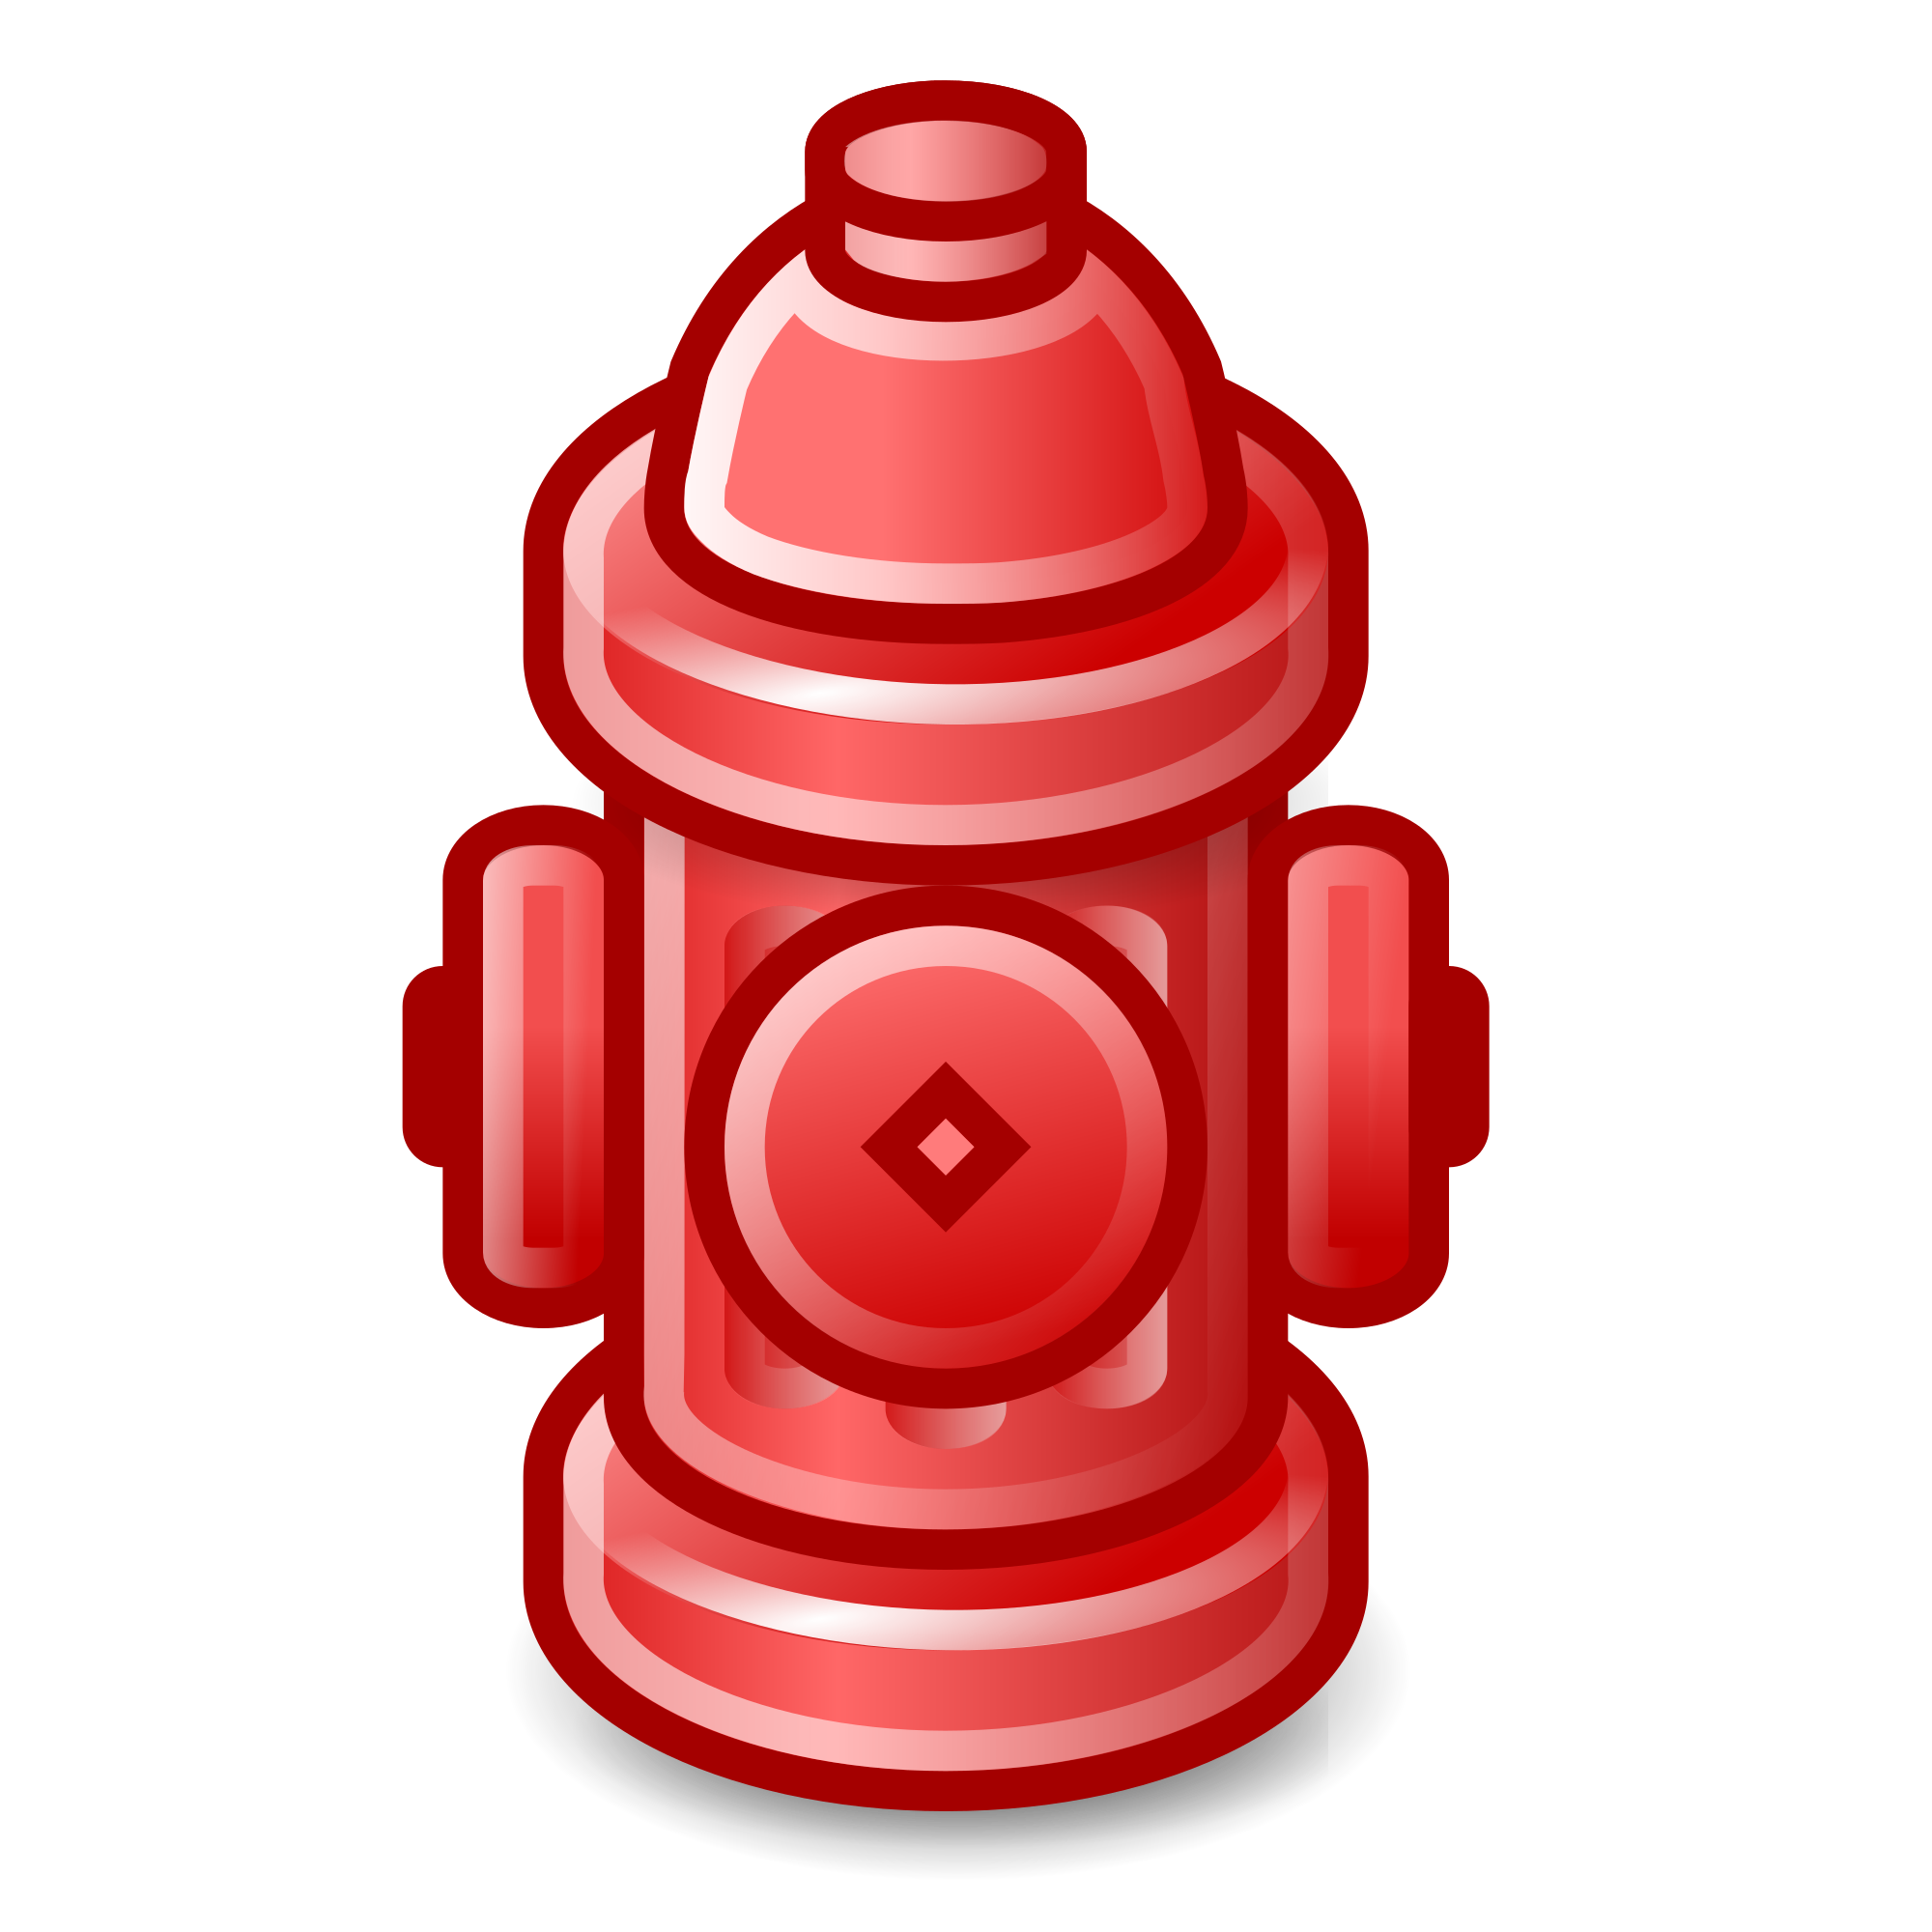 File:Hydrant.svg - Wikimedia Commons